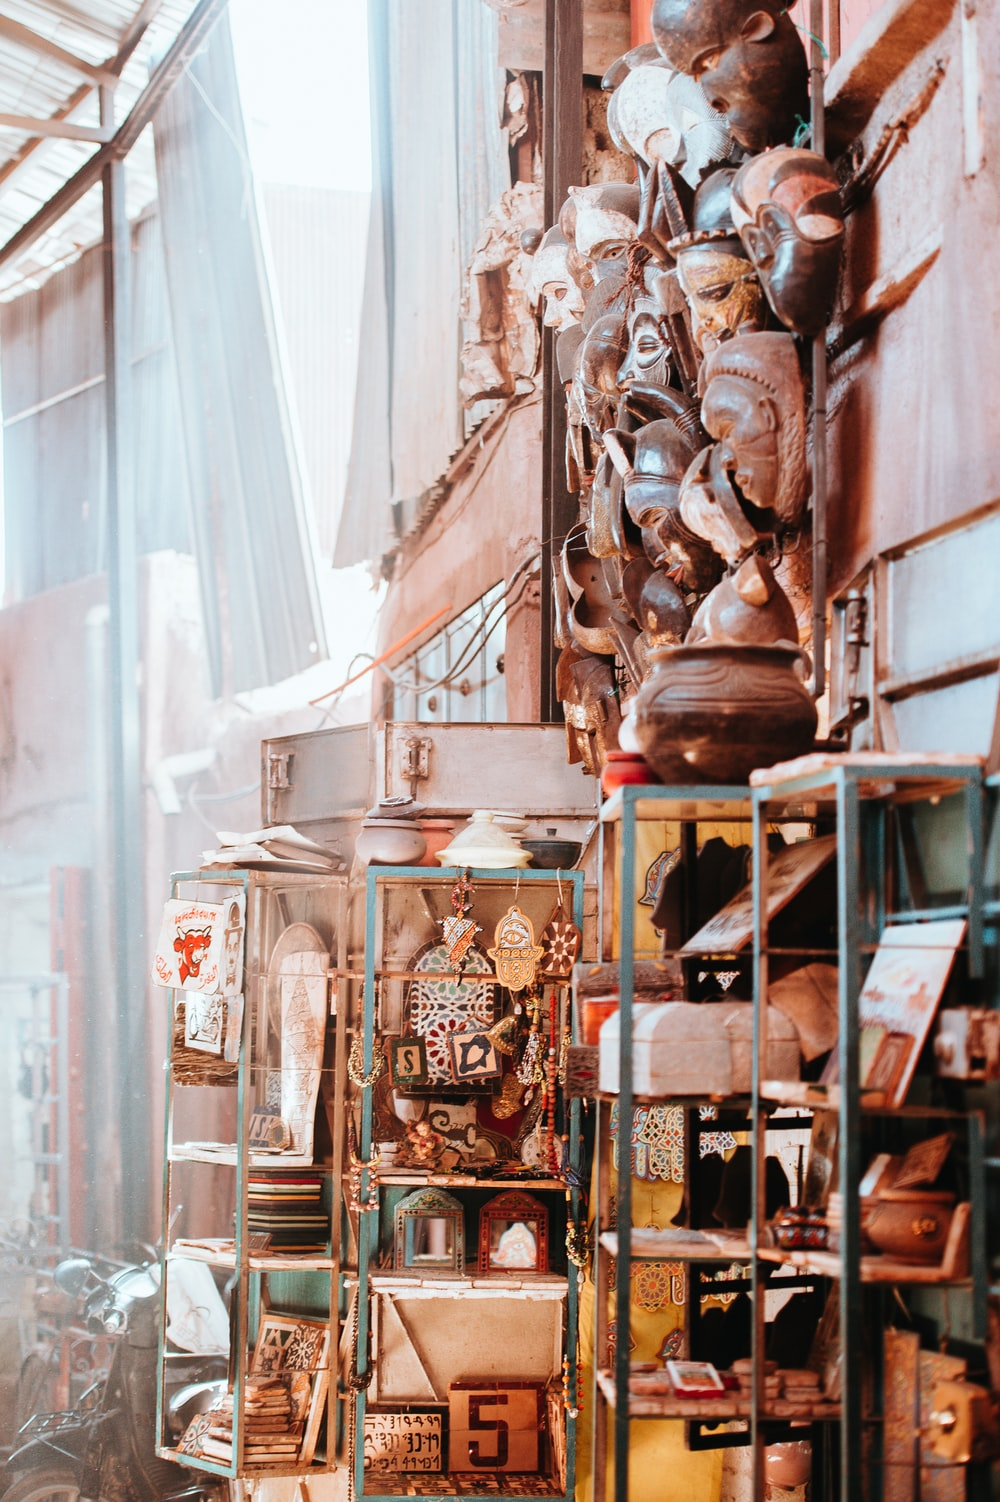 shelf of decorative masks and home ornaments